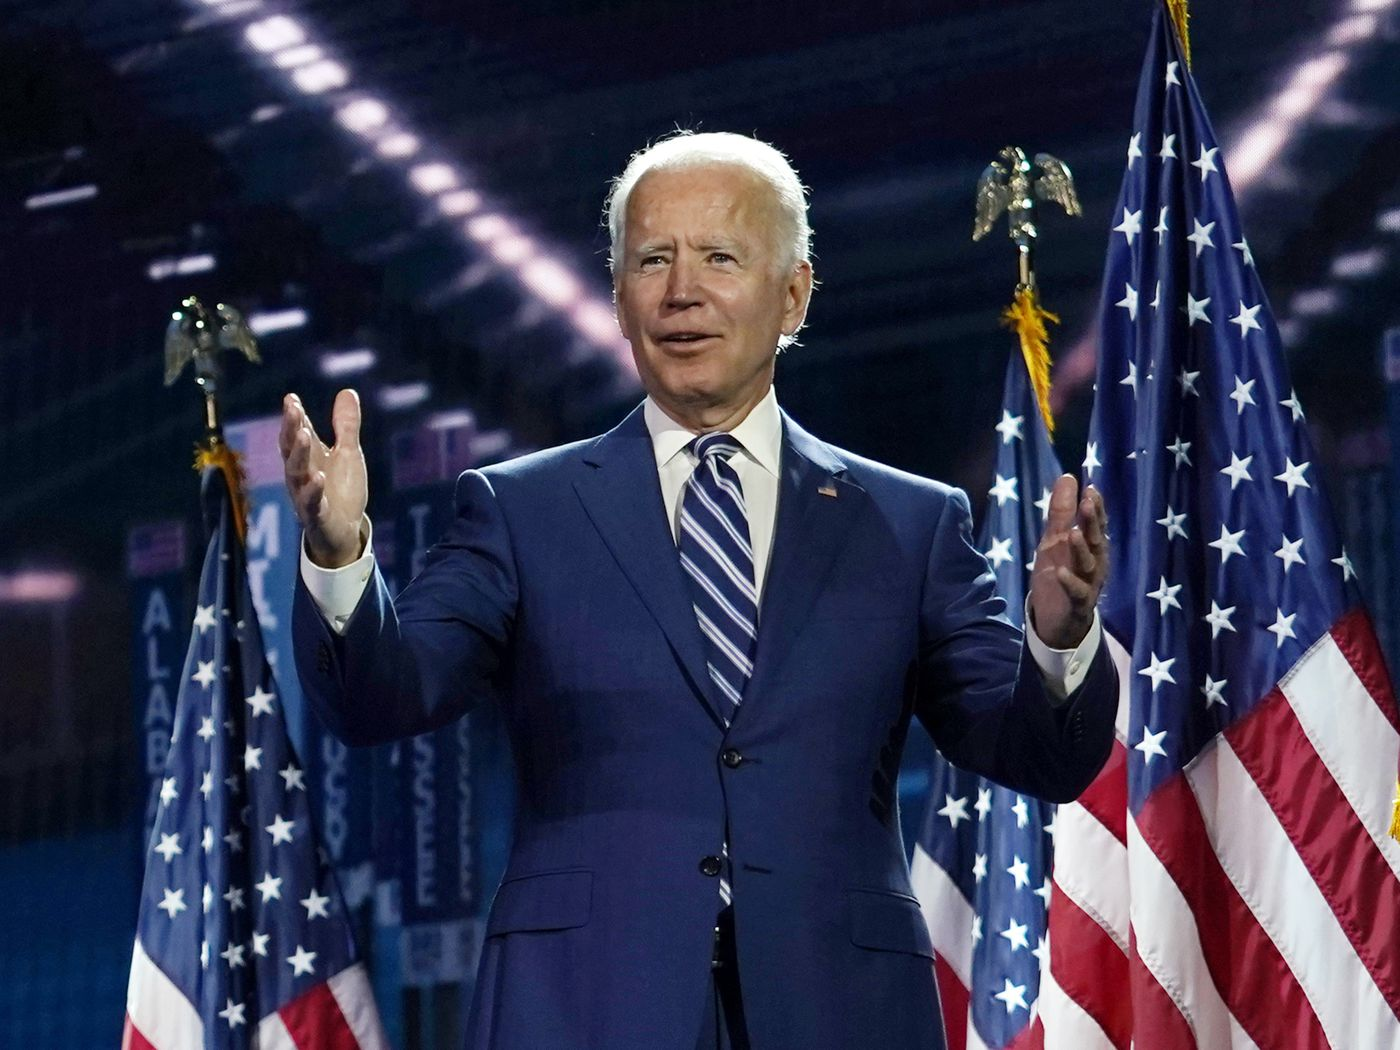 Joe Biden Accepts Nomination Former Vp Seeking Party National Unity In Convention Climax Chicago Sun Times